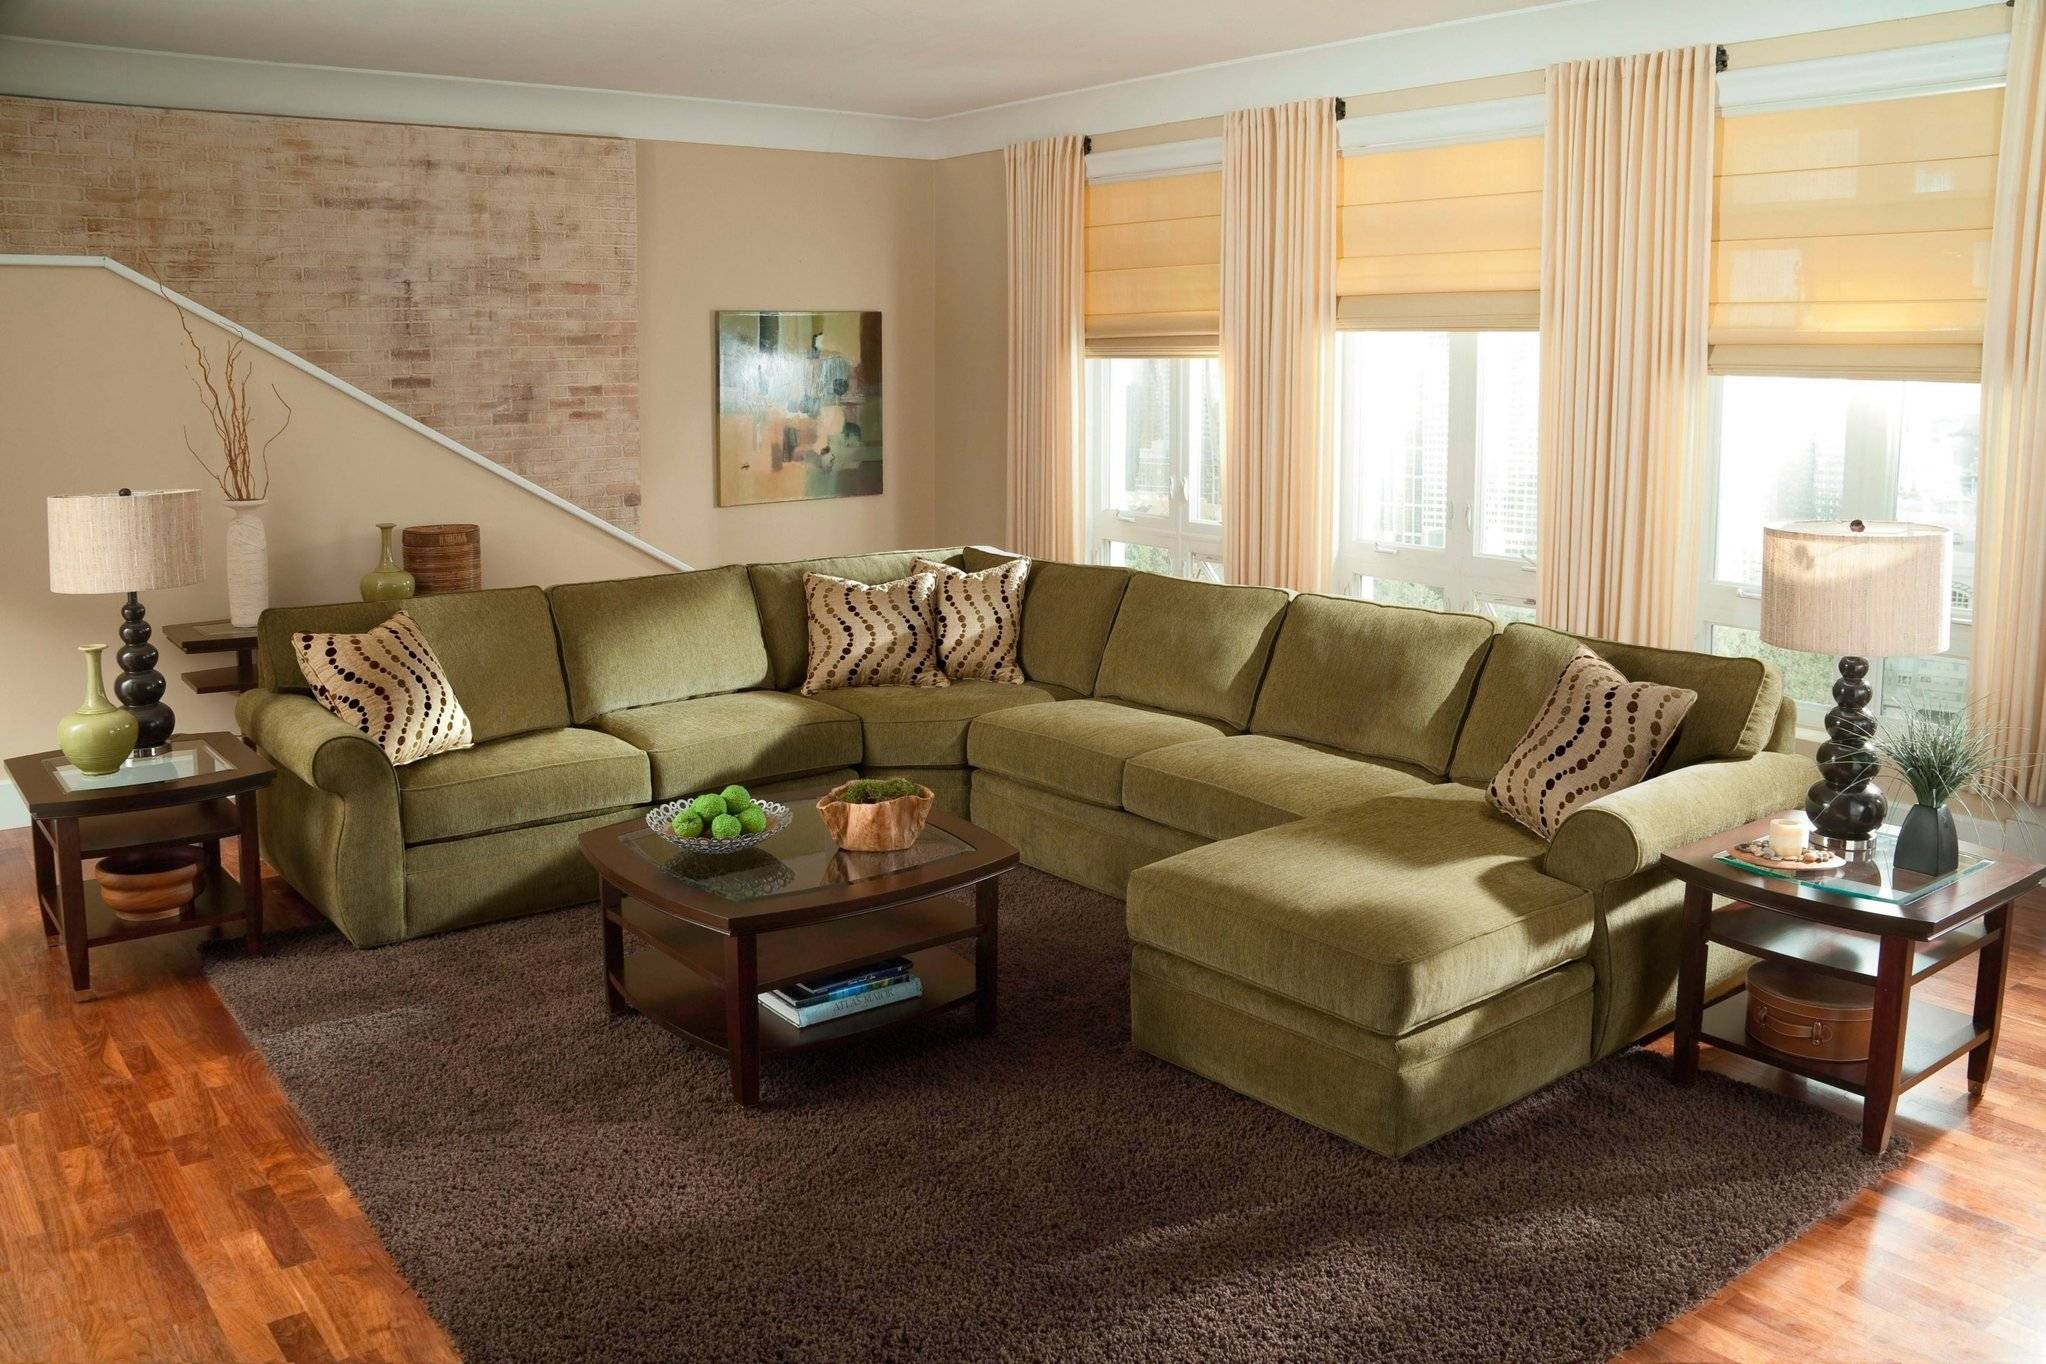 Interior: Luxury Oversized Sectional Sofa For Awesome Living Room intended for Extra Wide Sectional Sofas (Image 23 of 30)